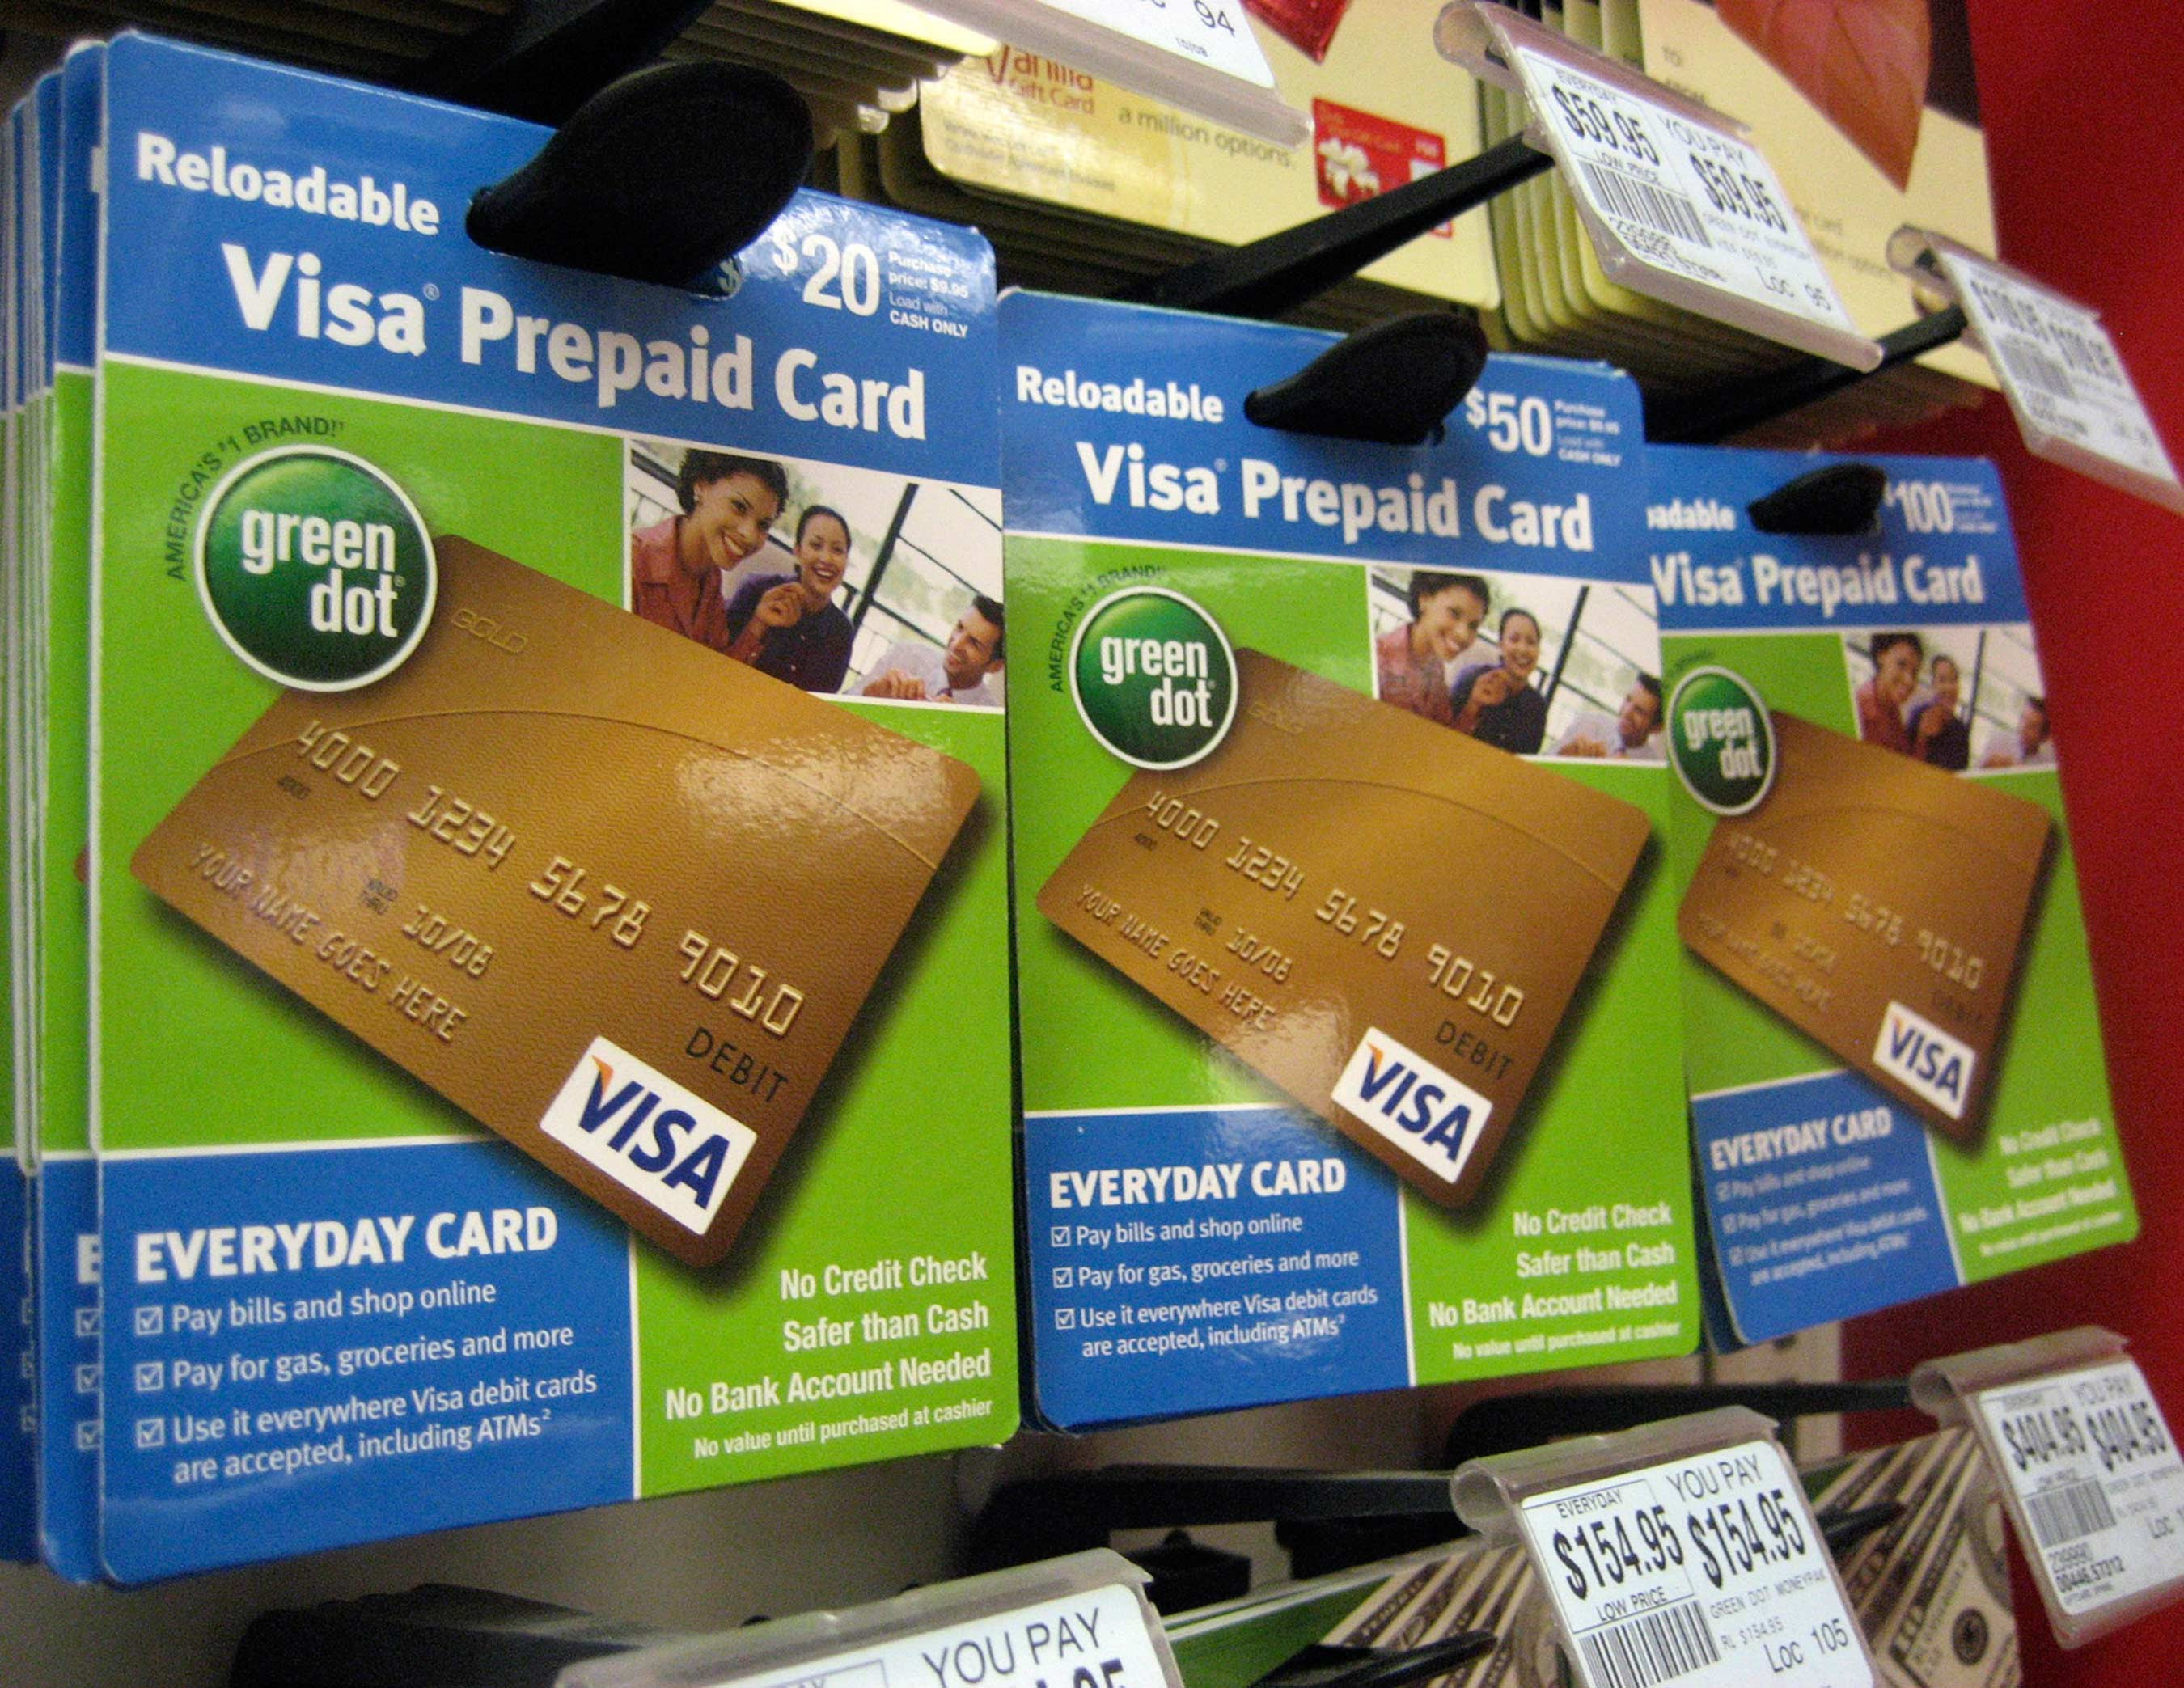 Prepaid cards eyed for crackdown by consumer watchdog - TODAY.com